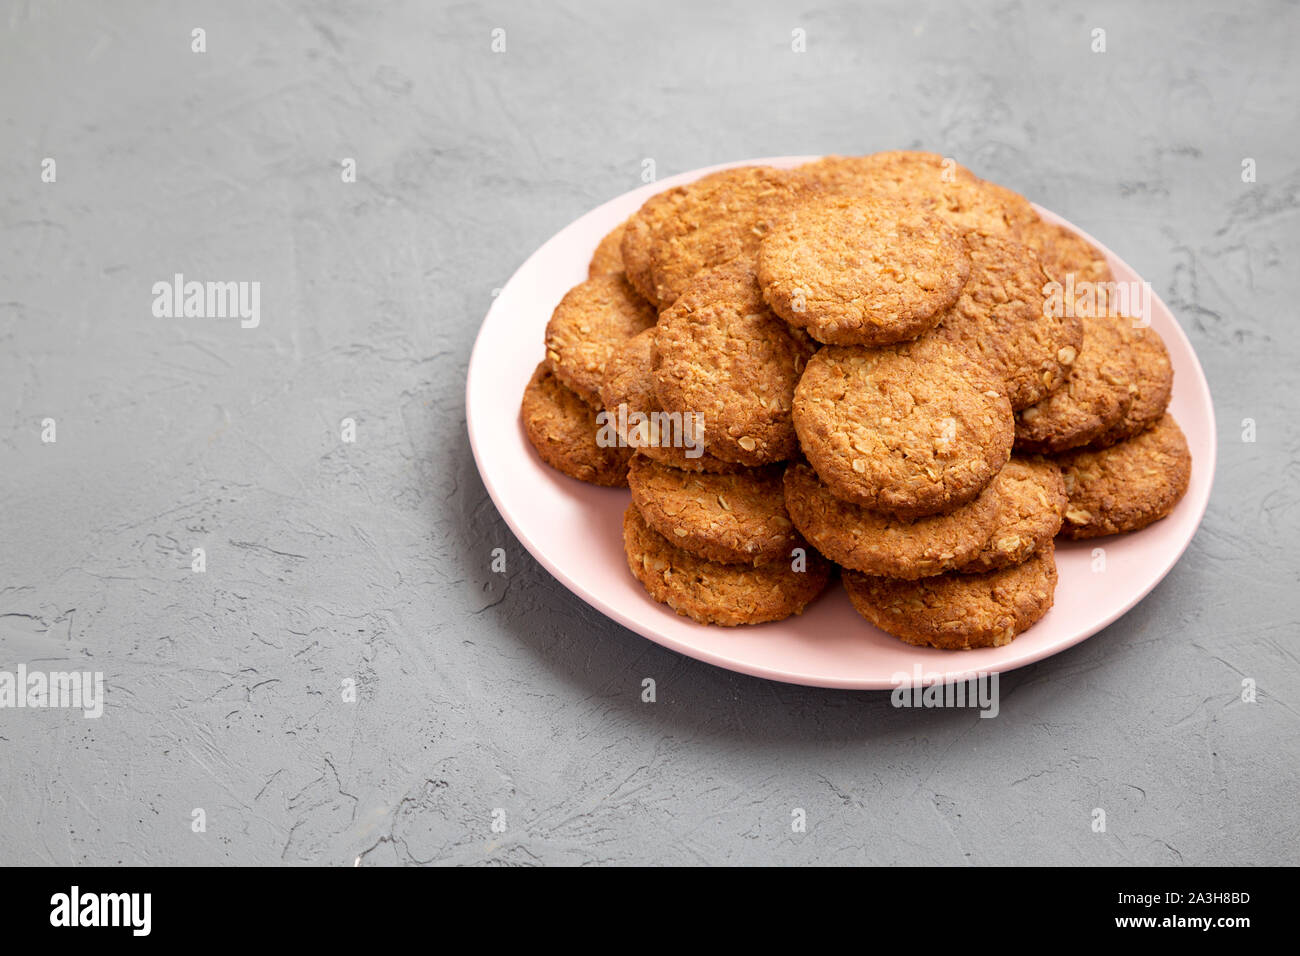 Cereal cookies on a pink plate on a gray surface, side view. Copy space. Stock Photo